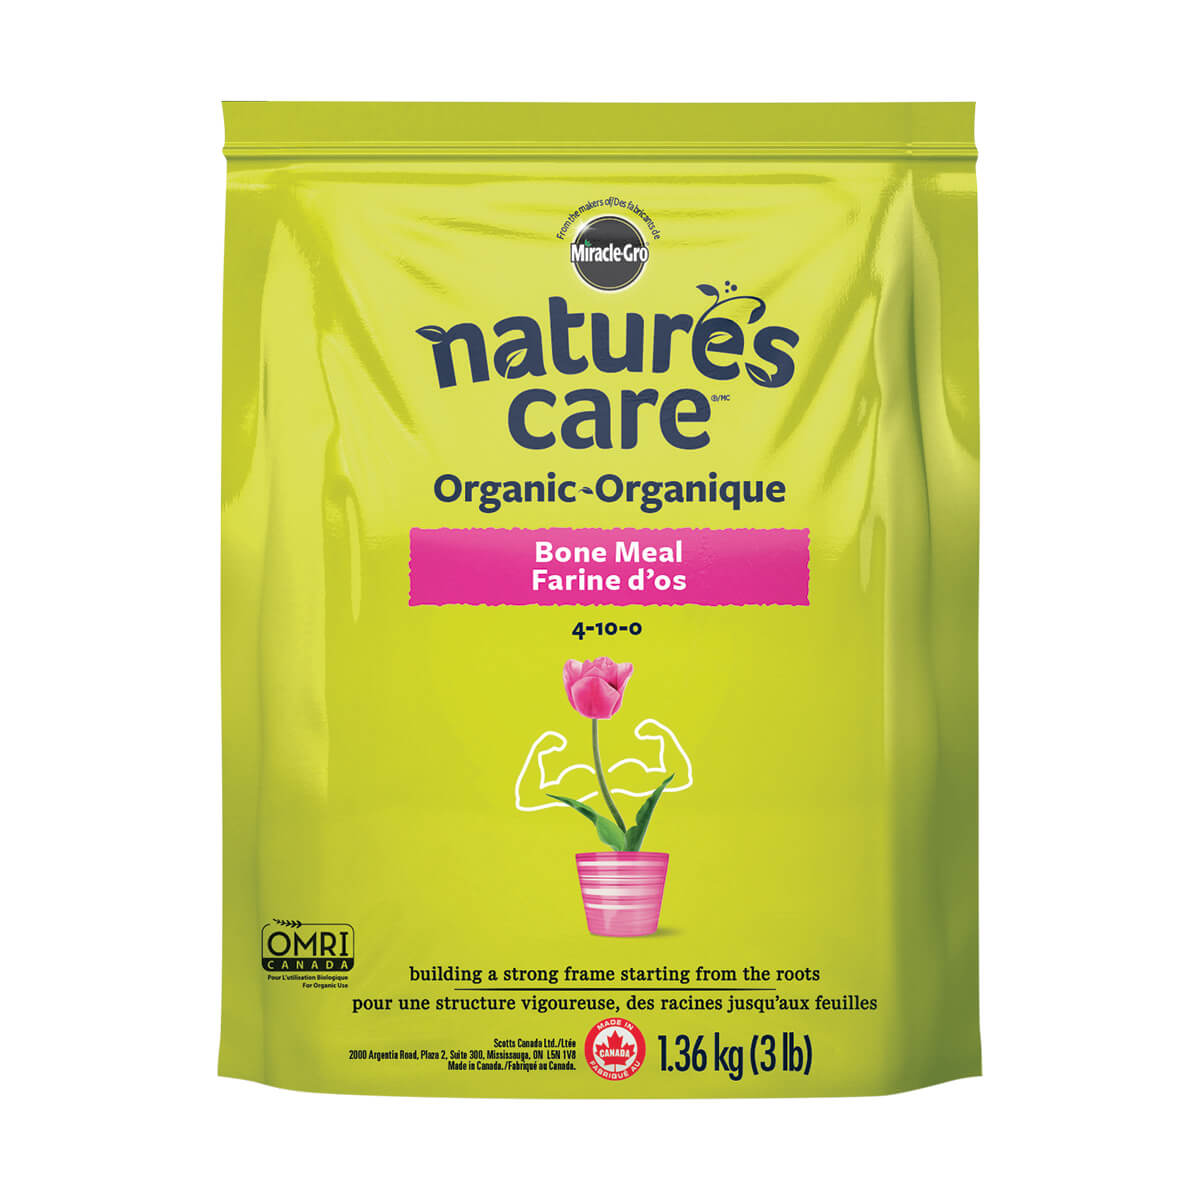 Miracle-Gro Natures's Care Organic Bone Meal - 1.36 kg